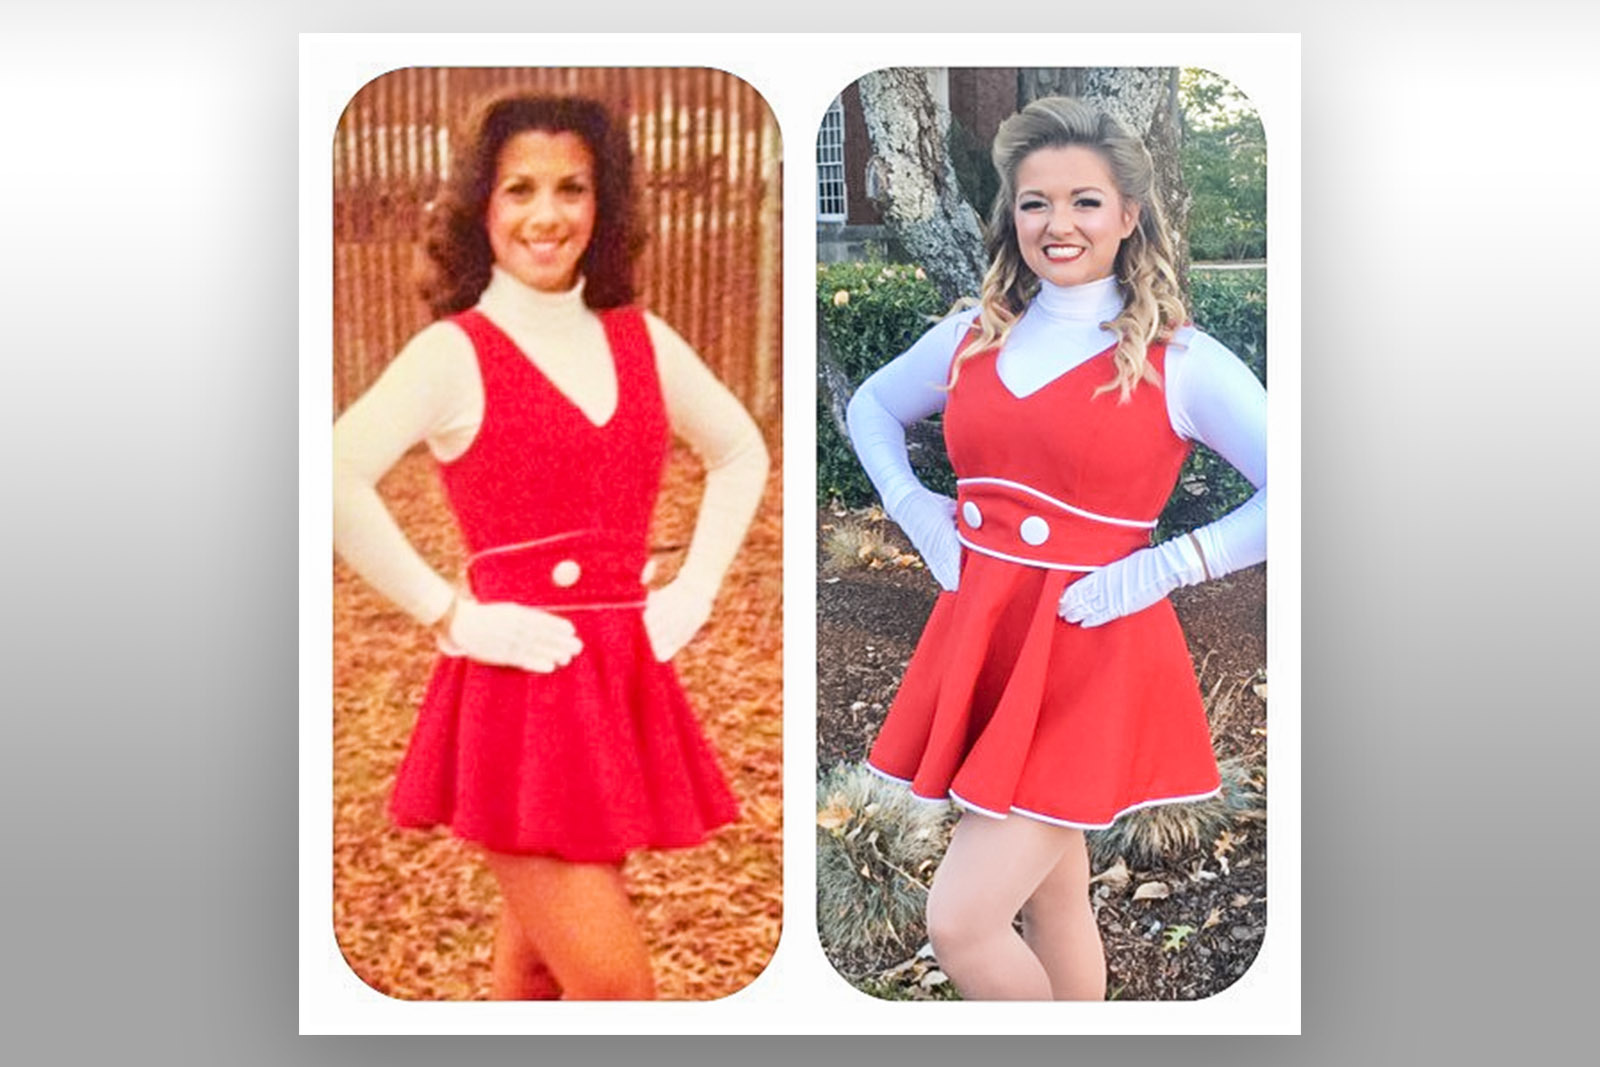 """Darby Angle, right, was a JSU Marching Ballerina just like her mother, Mary Angle, left. """"For us, our love and support of JSU is a true family affair,"""" Mary said."""